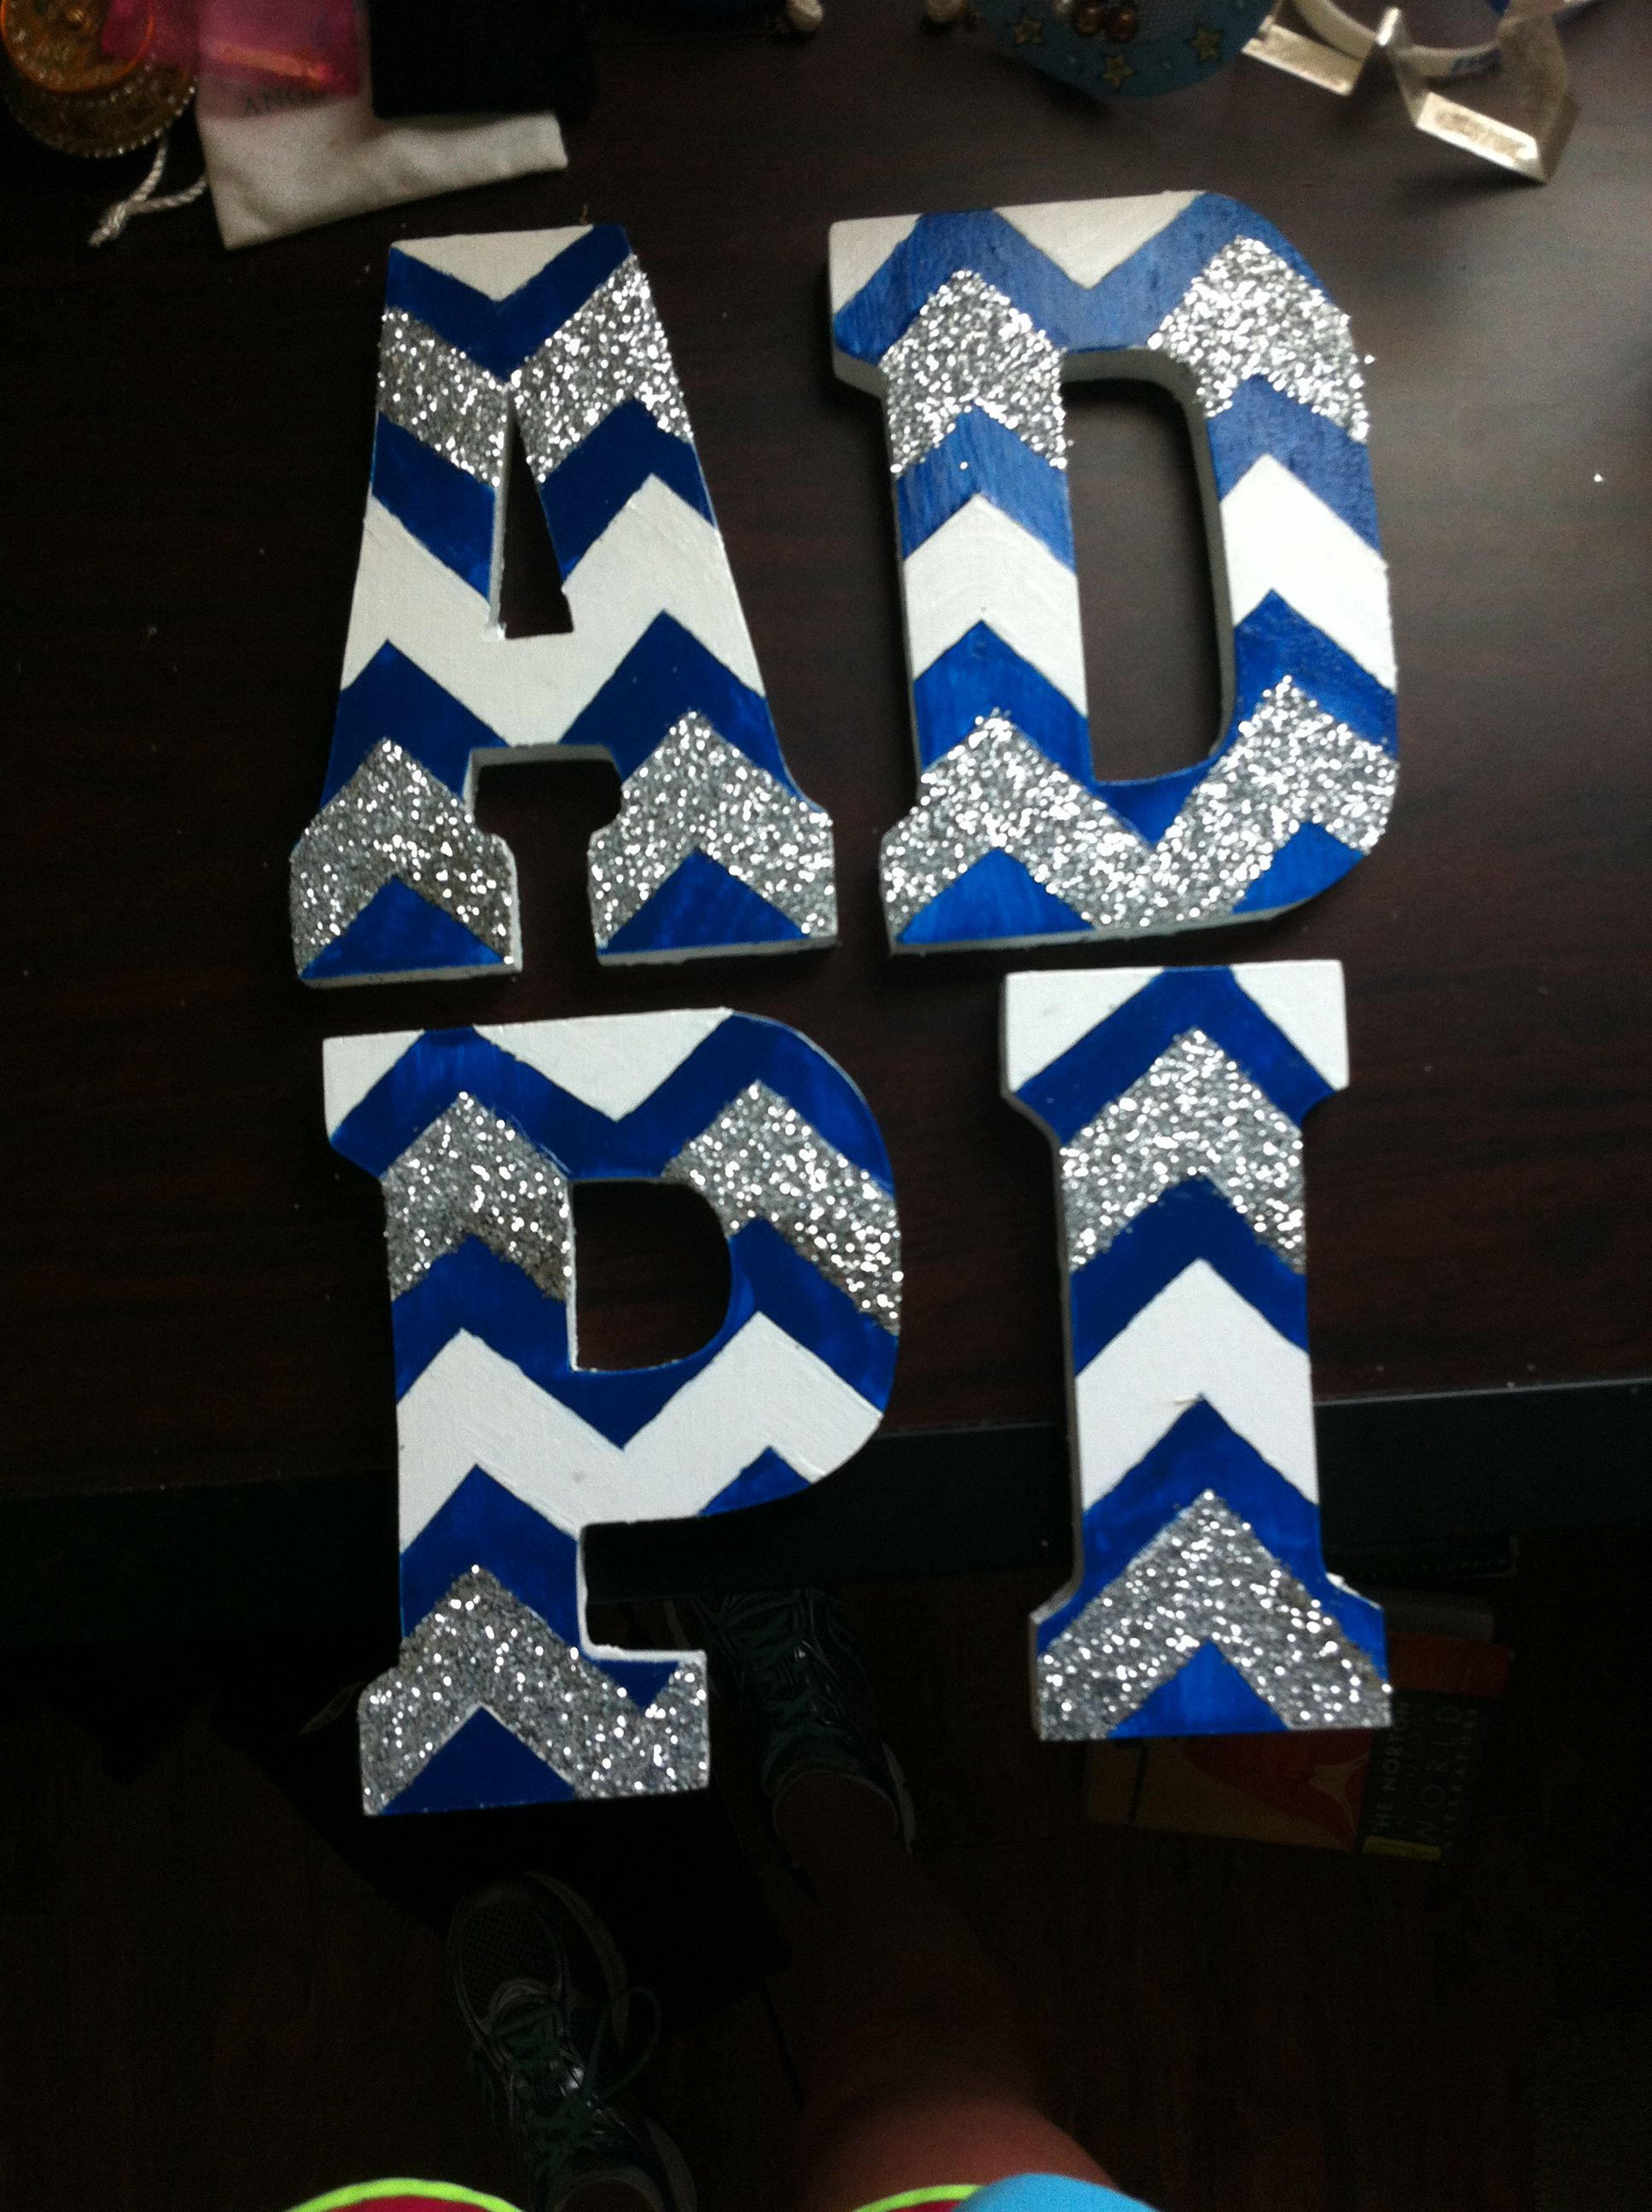 Adpi Wooden Sorority Letters With Chevron And Glitter Completed